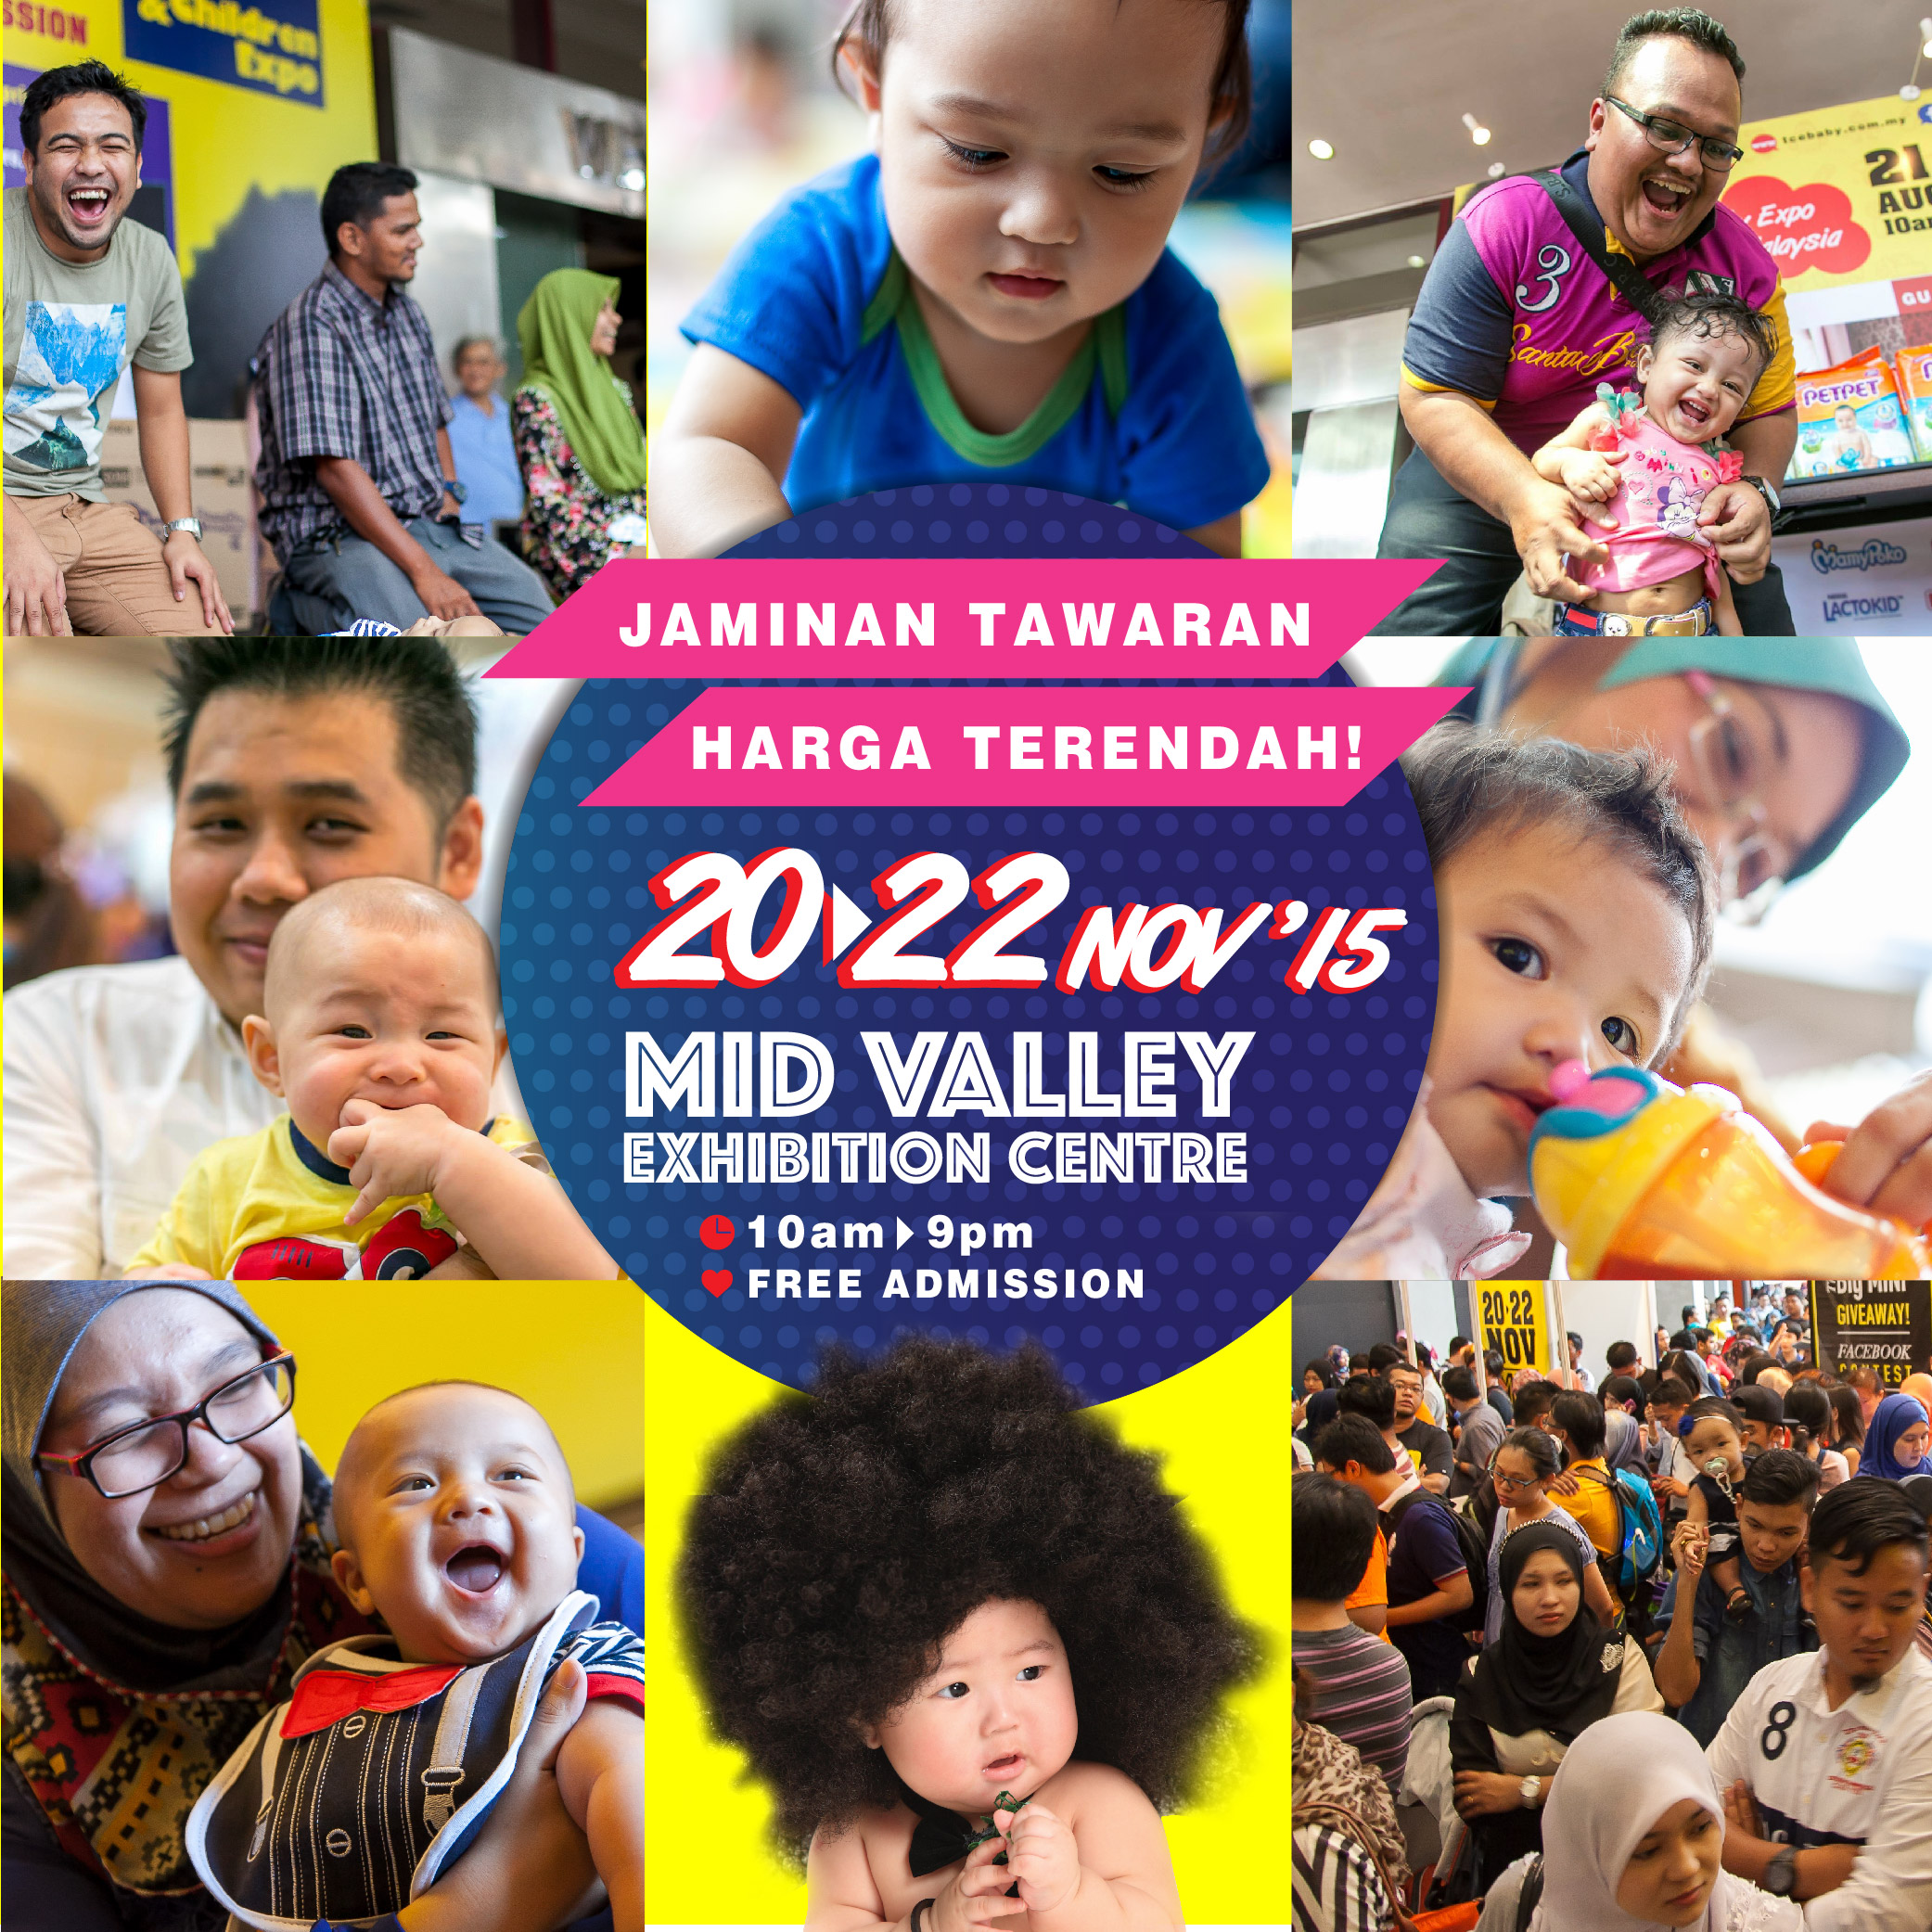 TCE Baby Expo_Lowest Price Guaranteed Deals_20-22 November 2015_Mid Valley Exhibition Centre